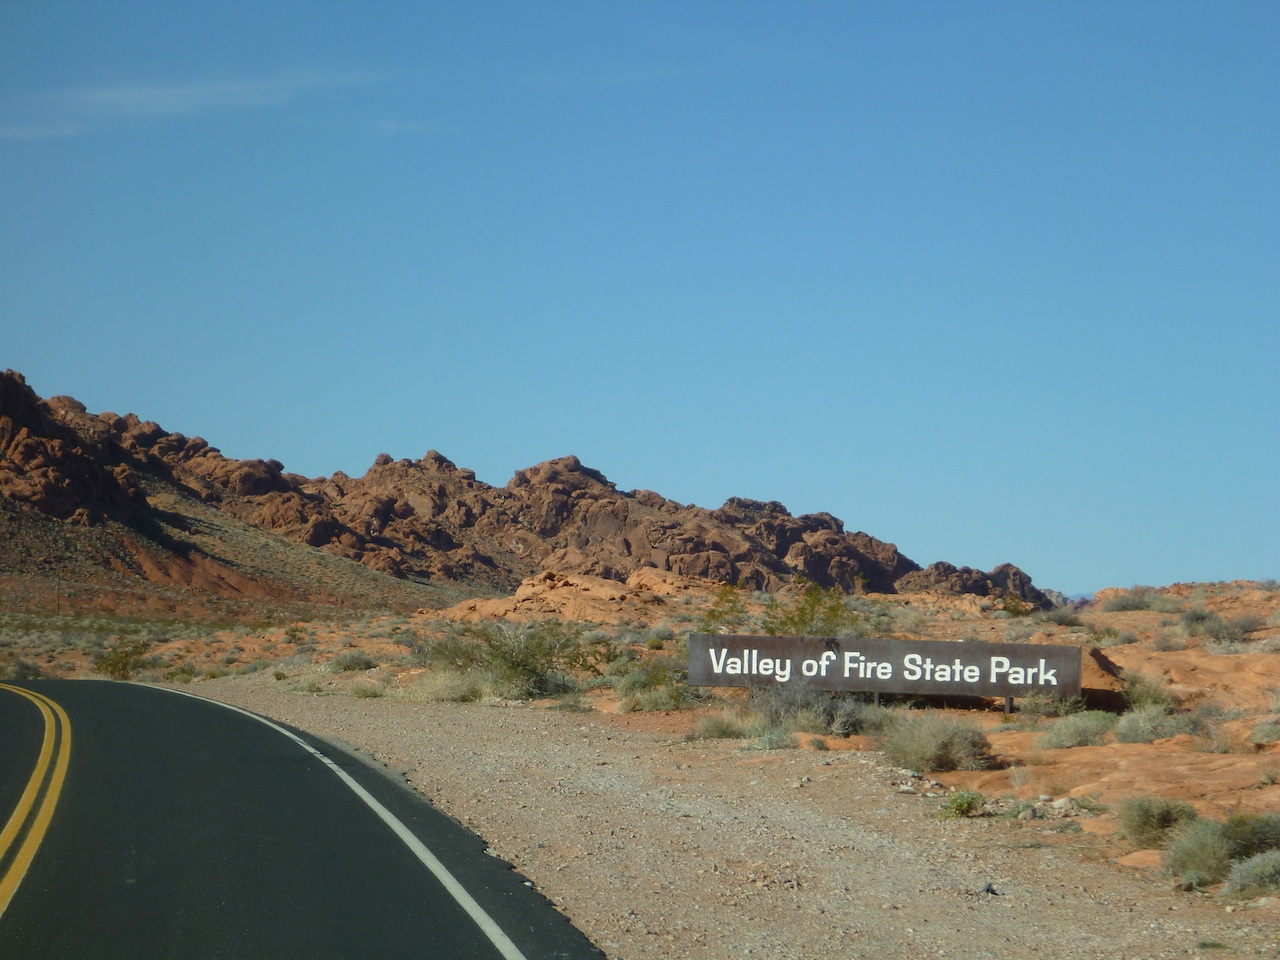 The Sign At The Entrance Of Valley Of Fire State Park